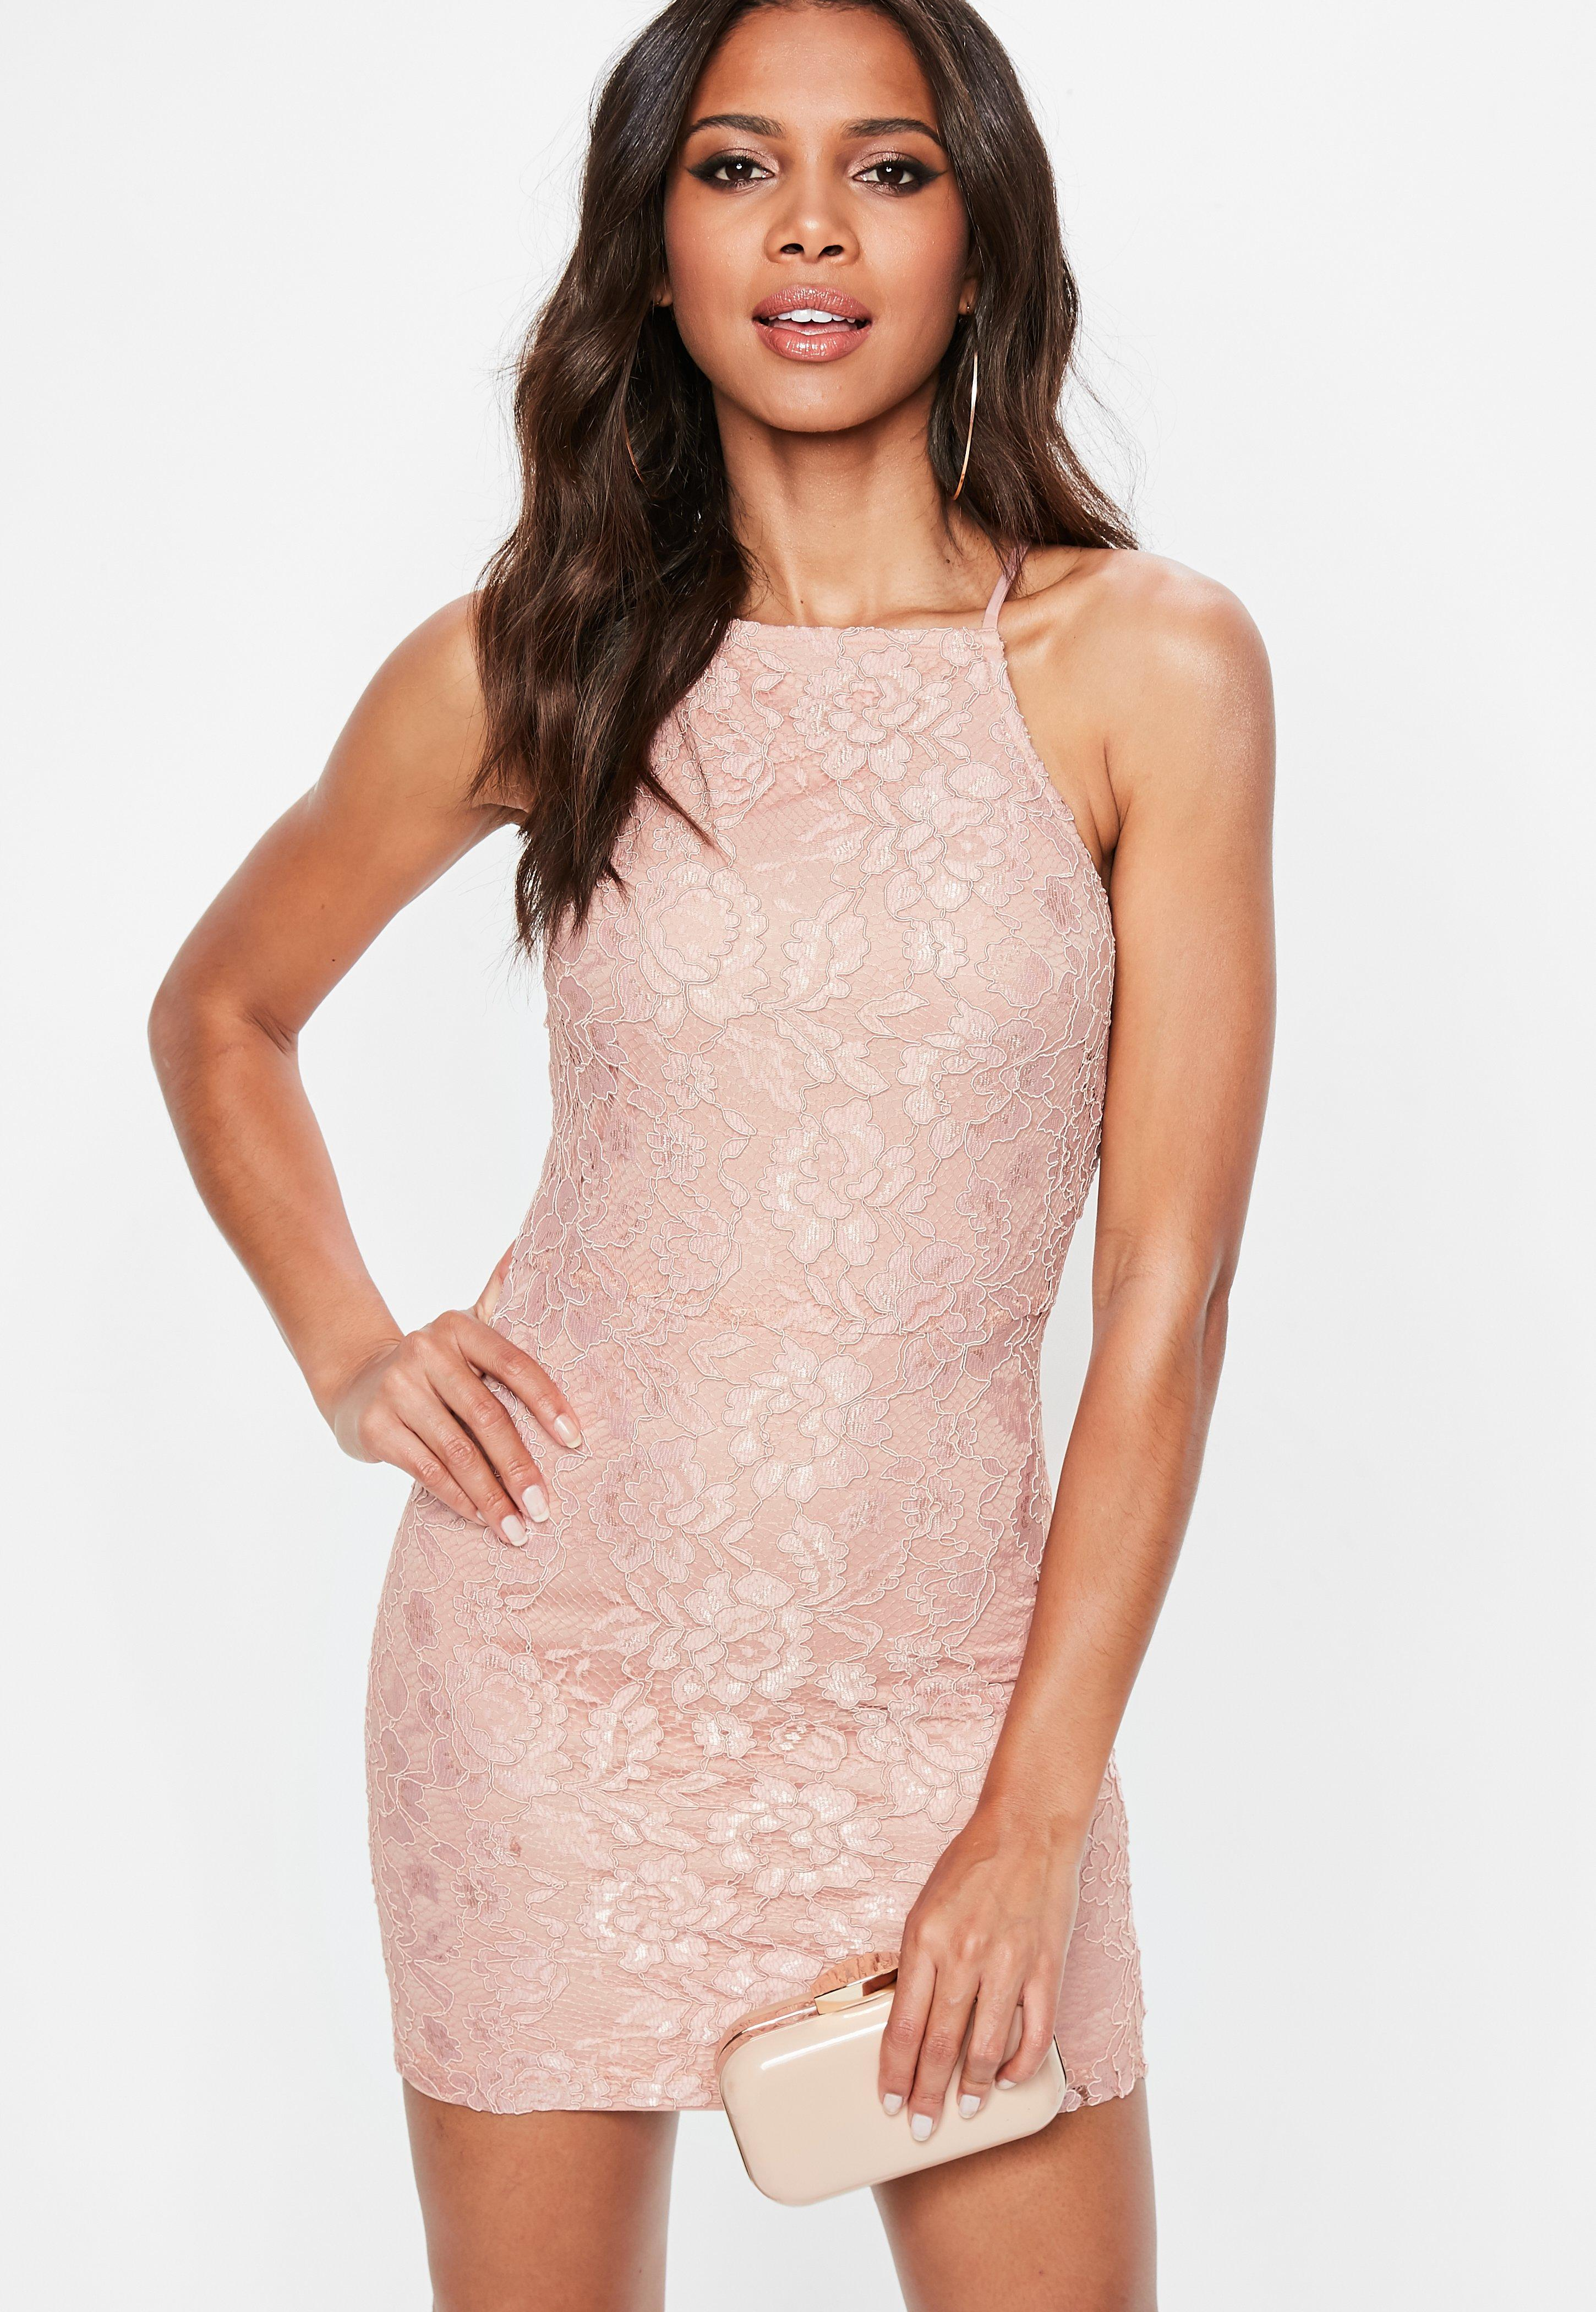 Lace bodycon dress catalog photo